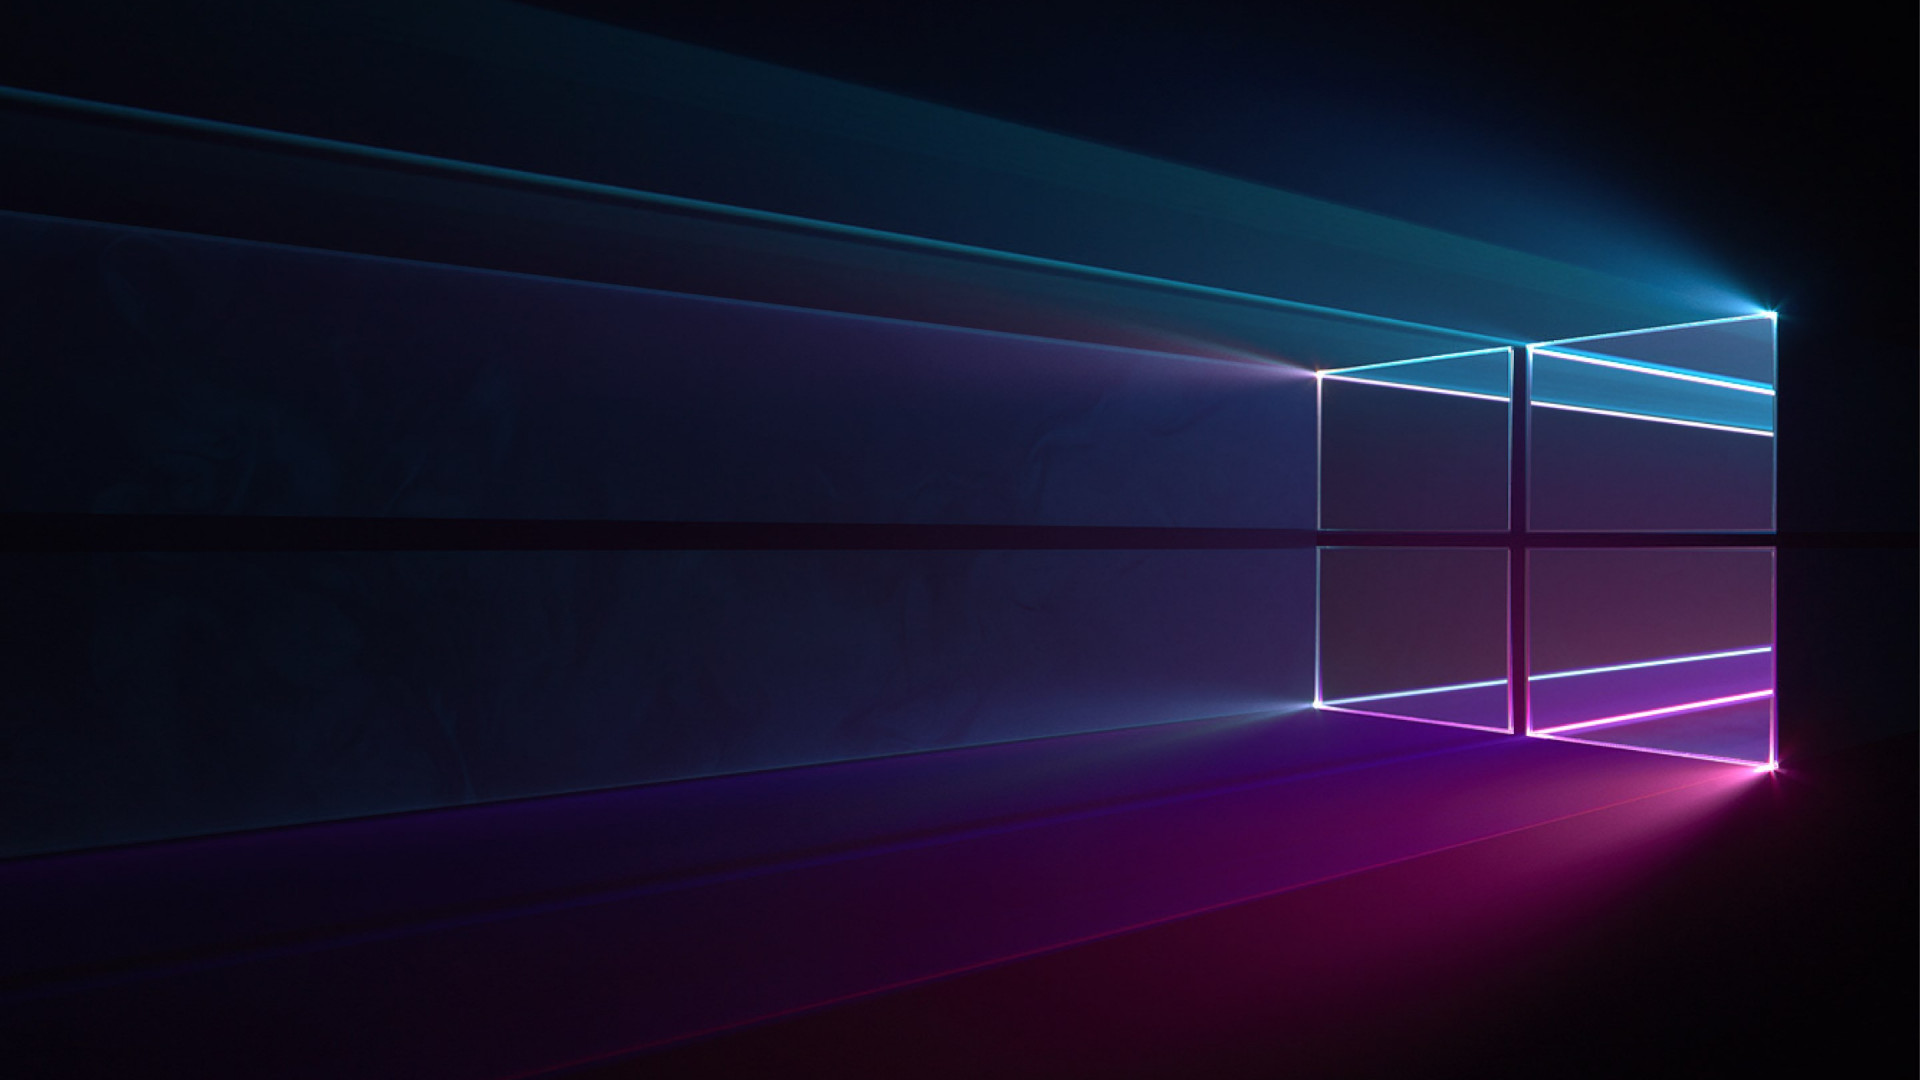 Download wallpaper: Windows 10 Hero 1920x1080